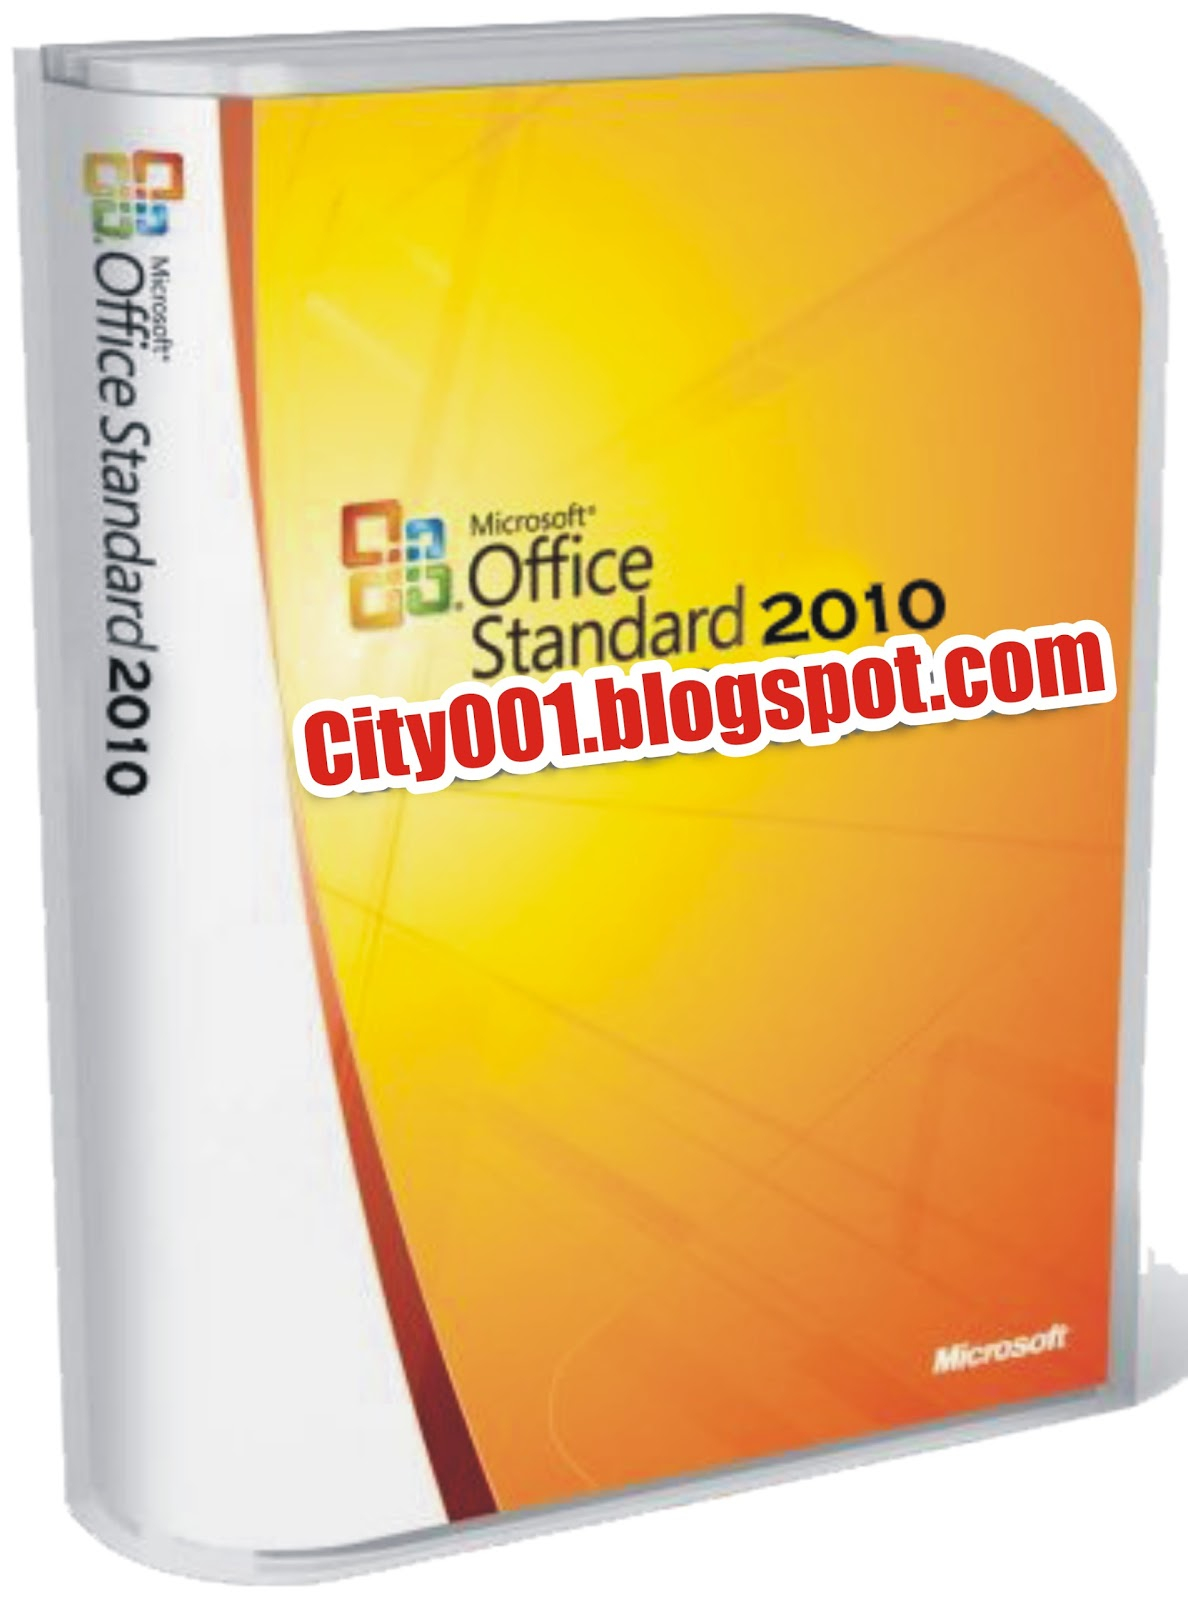 microsoft visio 2010 free download for windows 7 32 bit with crack